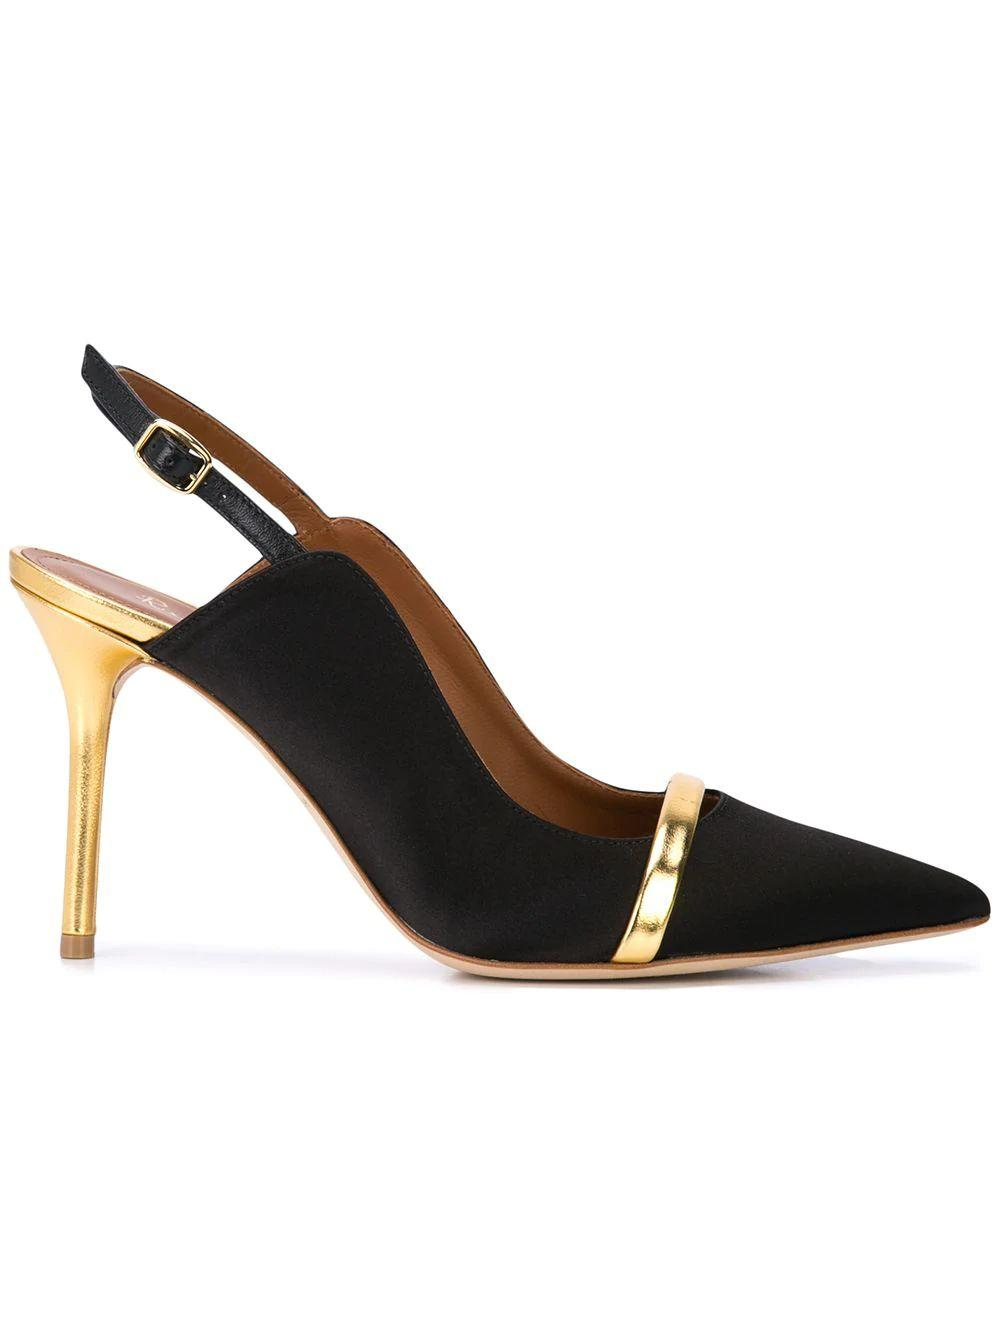 Satin/Mirror Nappa 85mm Slingback Item # MARION85-1